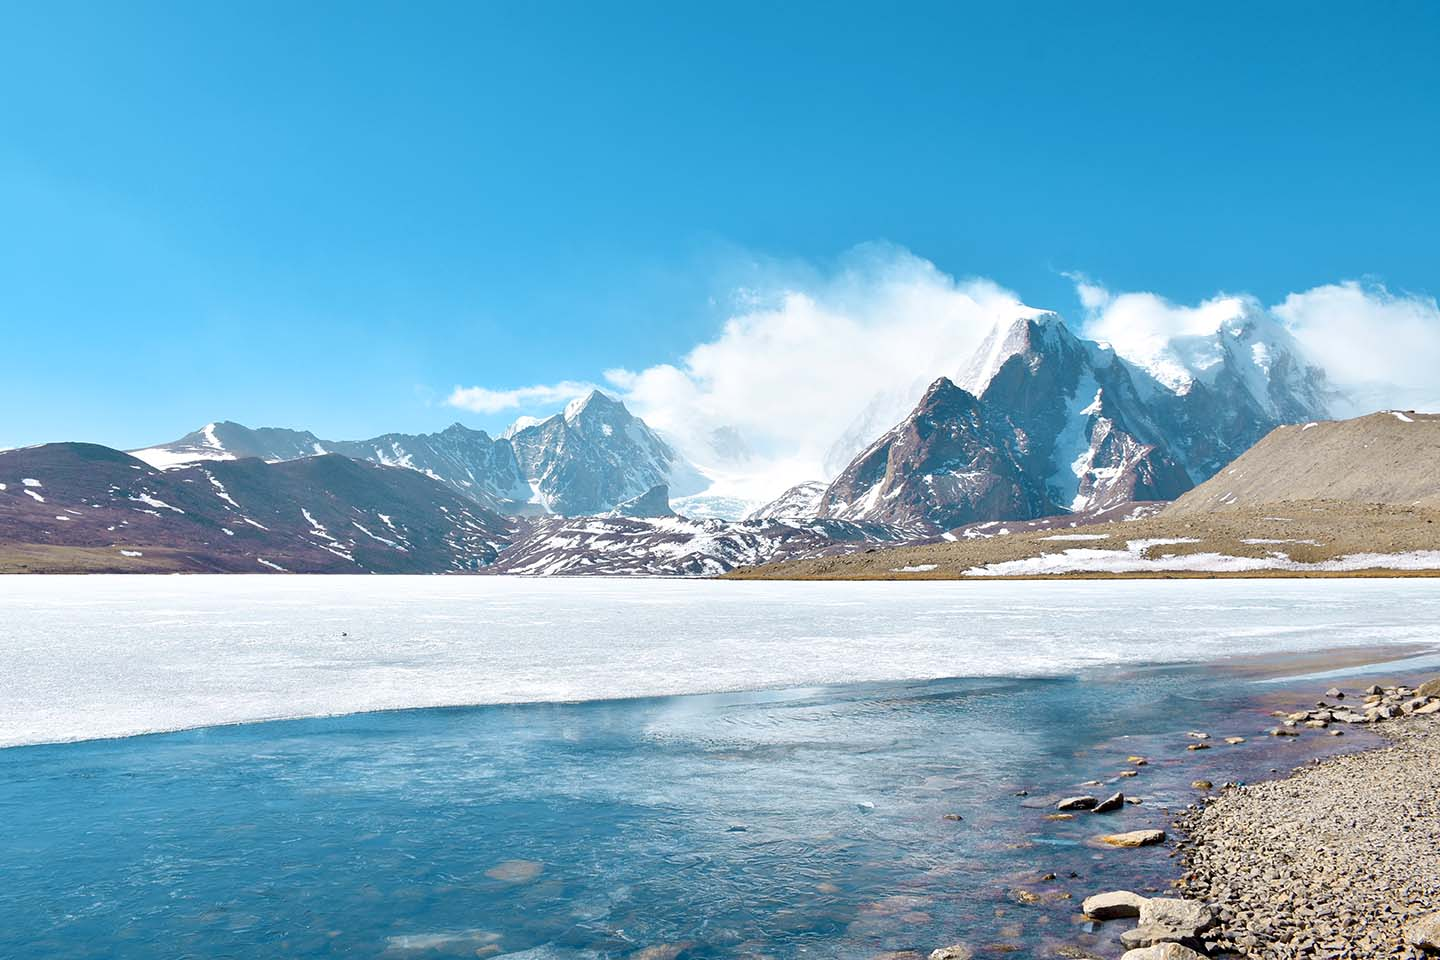 Partially frozen Gurudongmar Lake, Lachen, North Sikkim